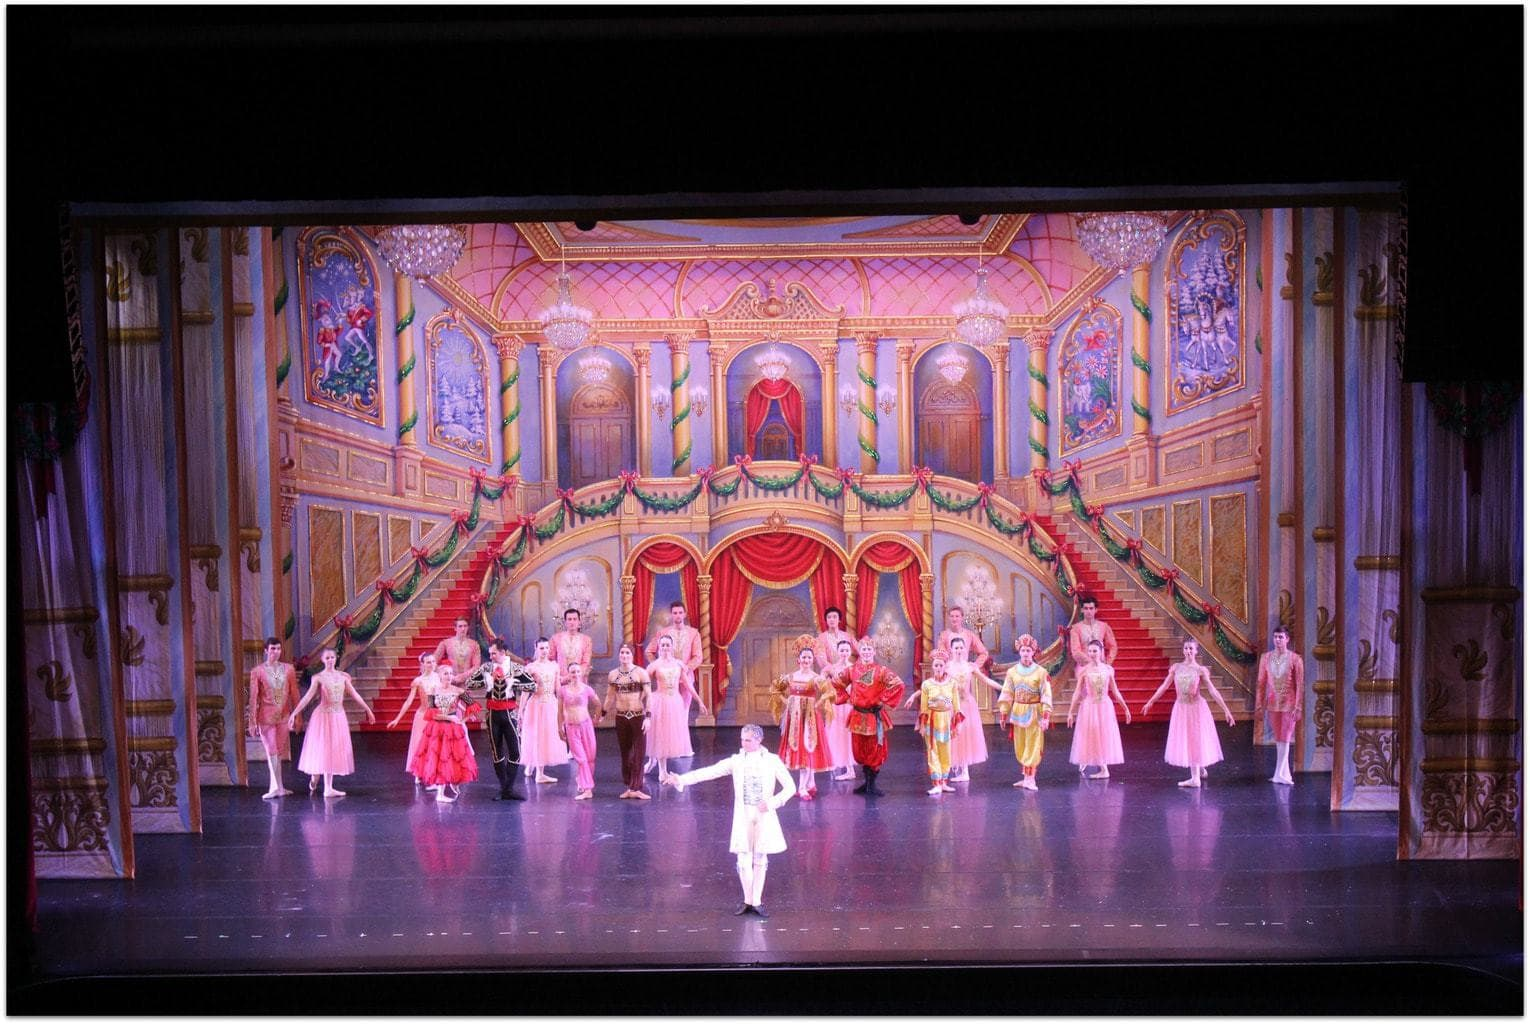 Seeing the Great Russian Nutcracker may become a new family tradition for you!